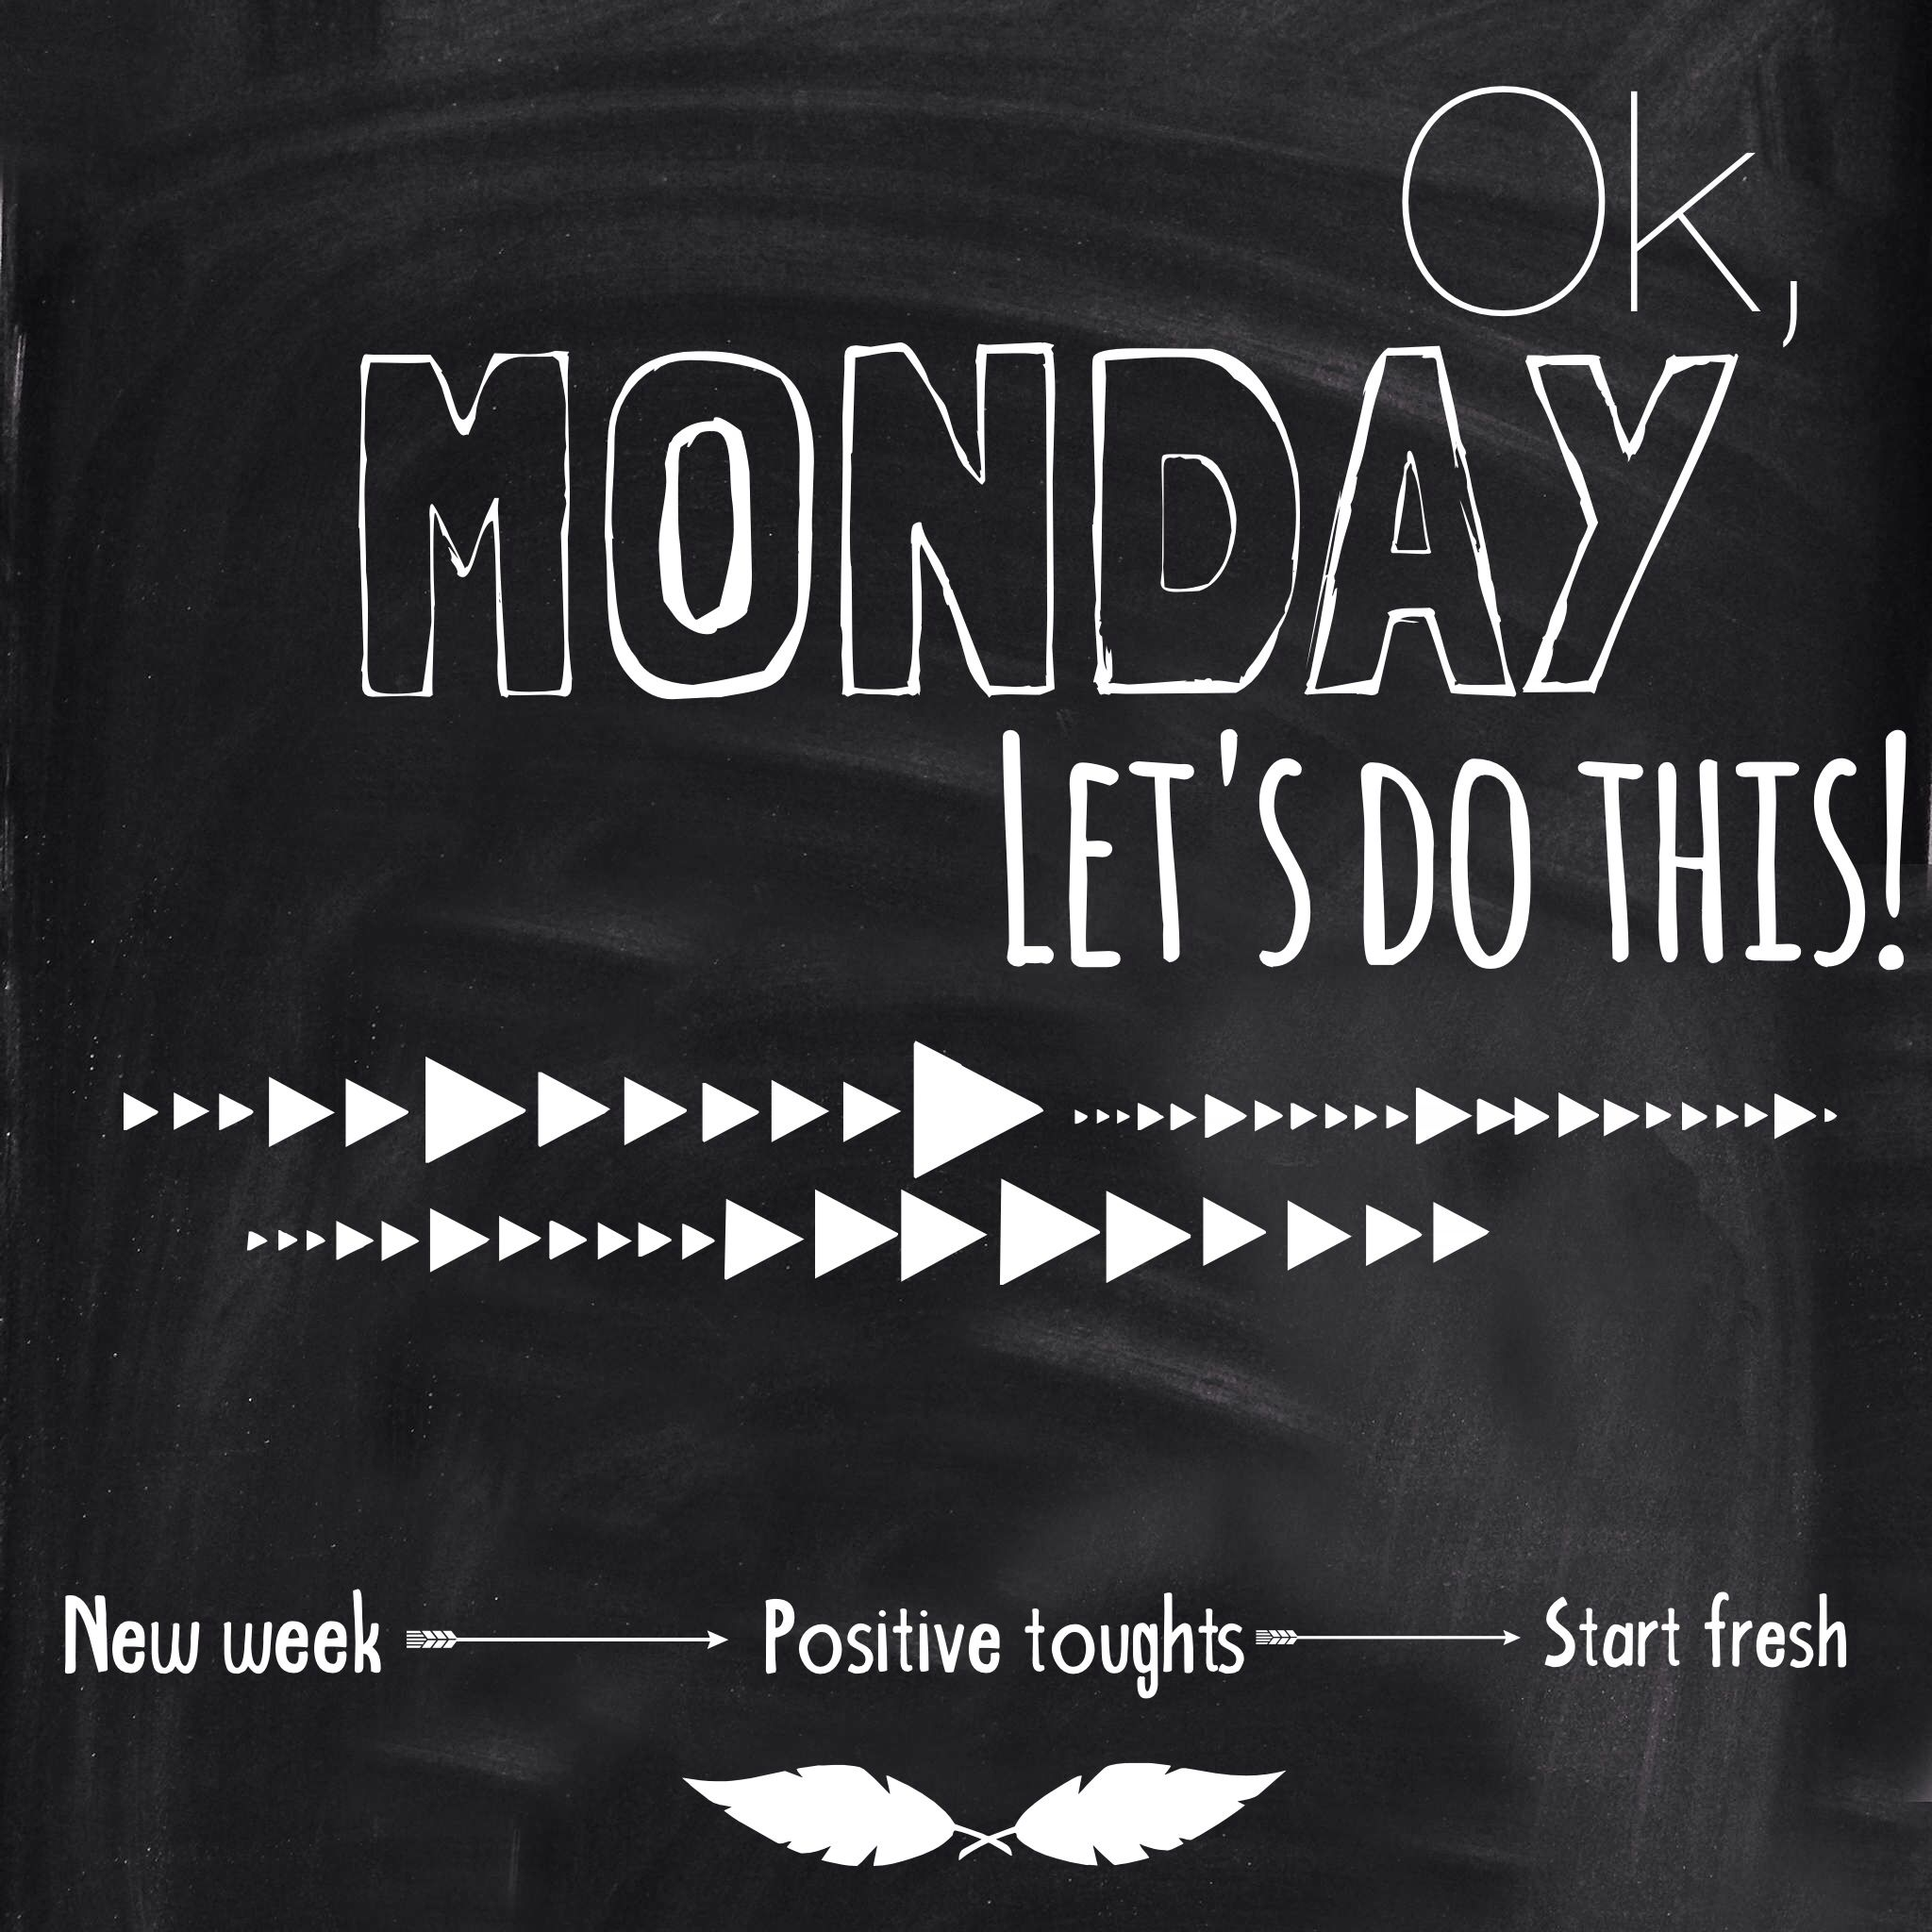 Week Quotes Gorgeous Quote Ok Monday Let's Do This New Week Positive Thou